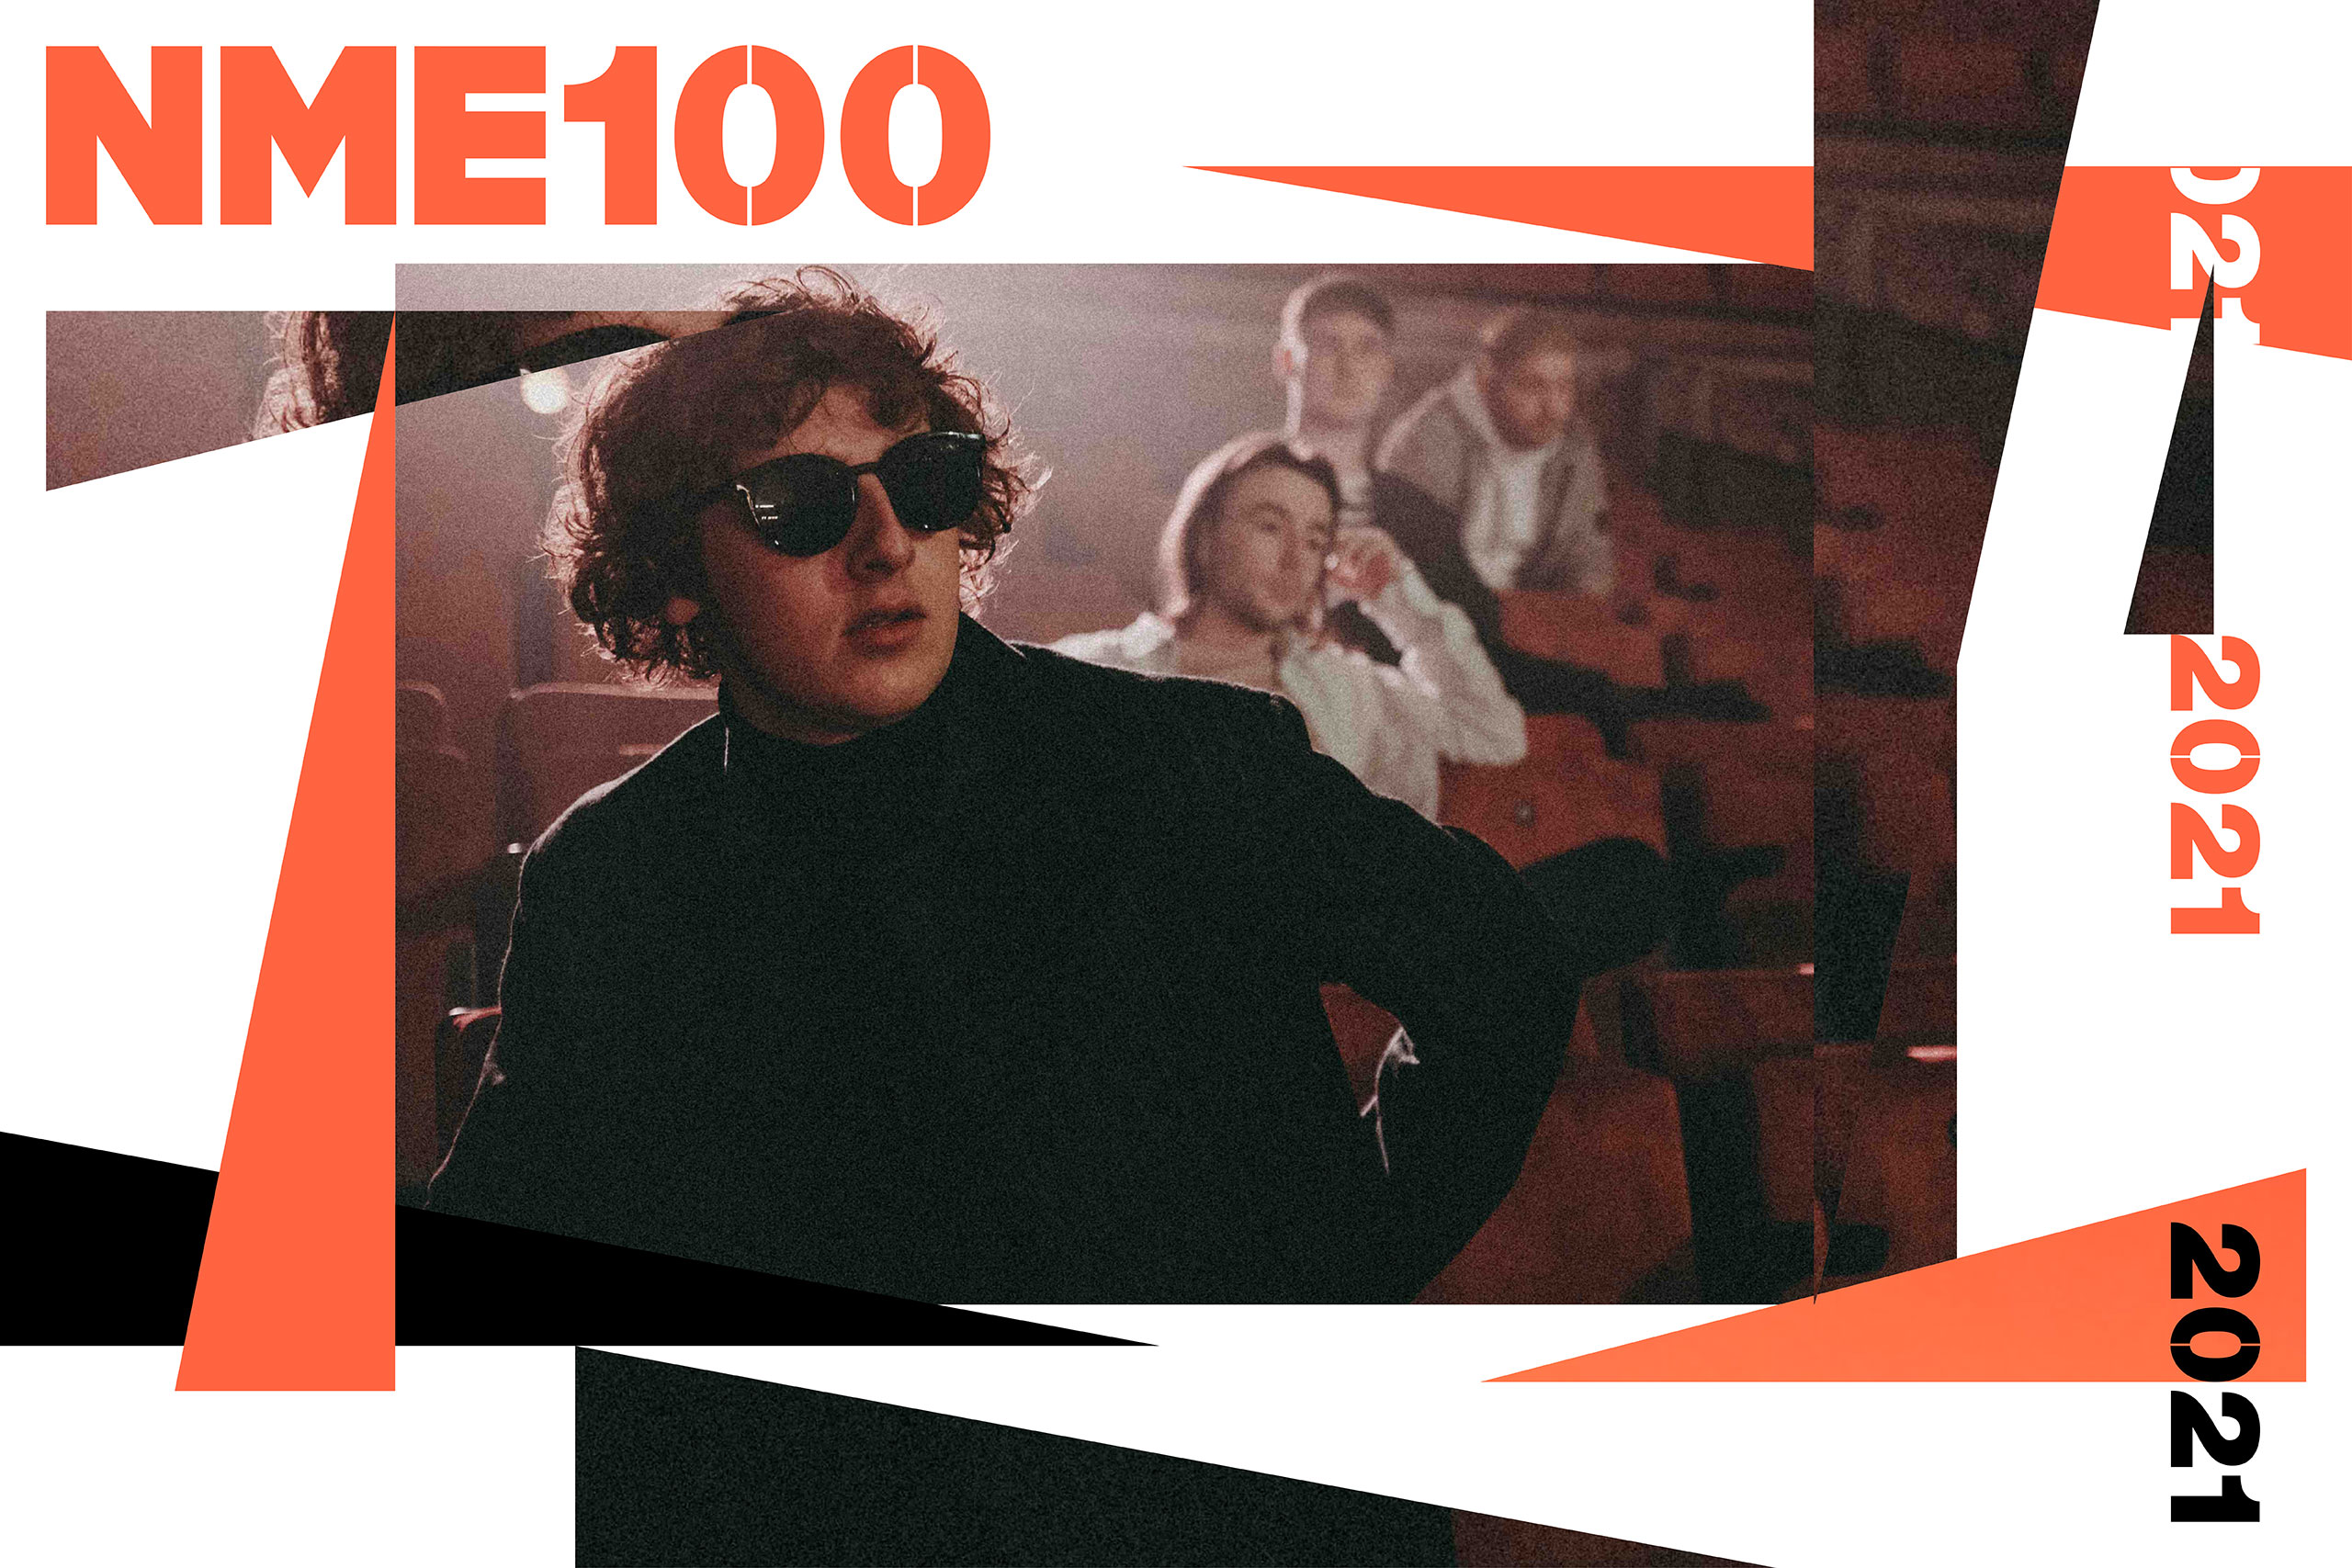 NME 100 the snuts